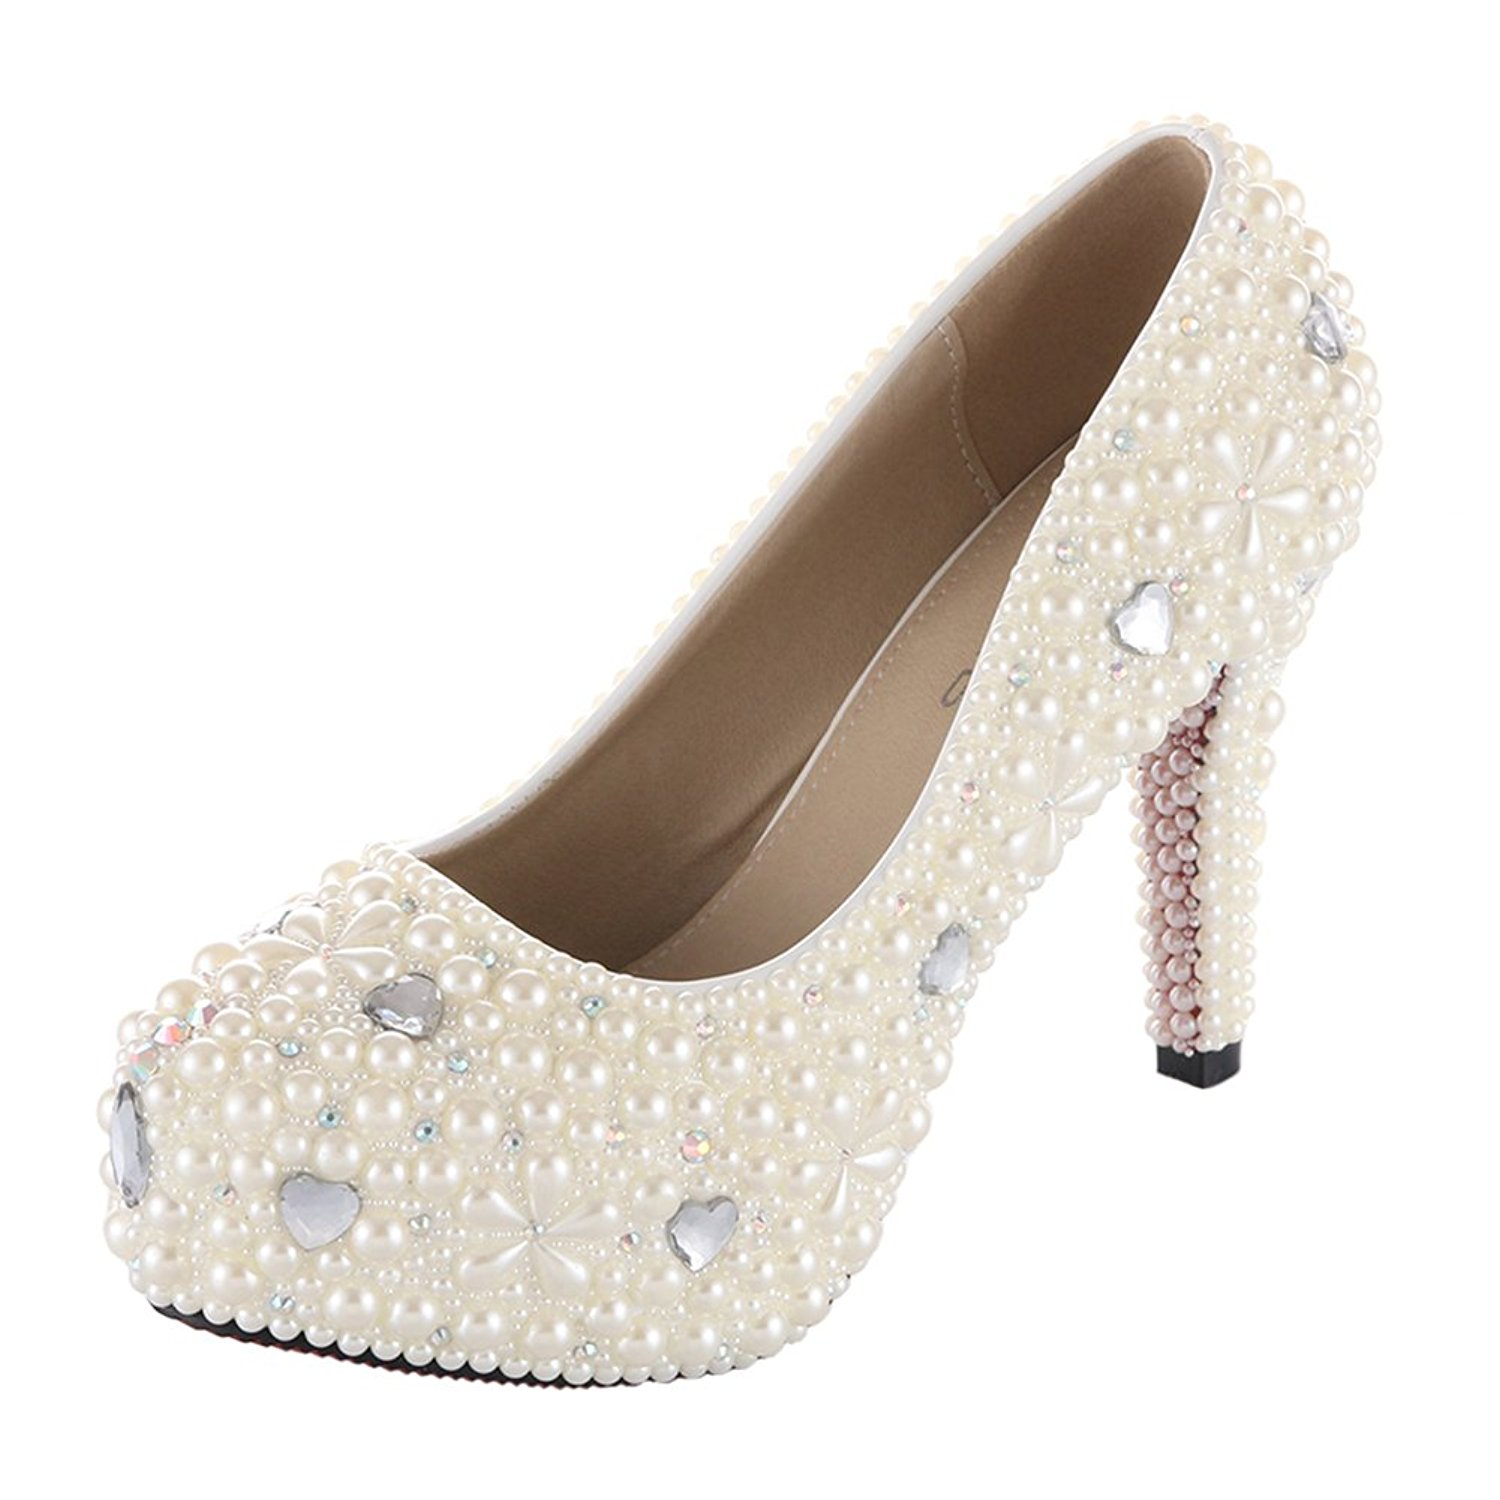 VELCANS Rhinestone Crystal Pearl Women Platform Bridal,Bridesmaid,Party,Evening,Proms Dress Shoes Pumps